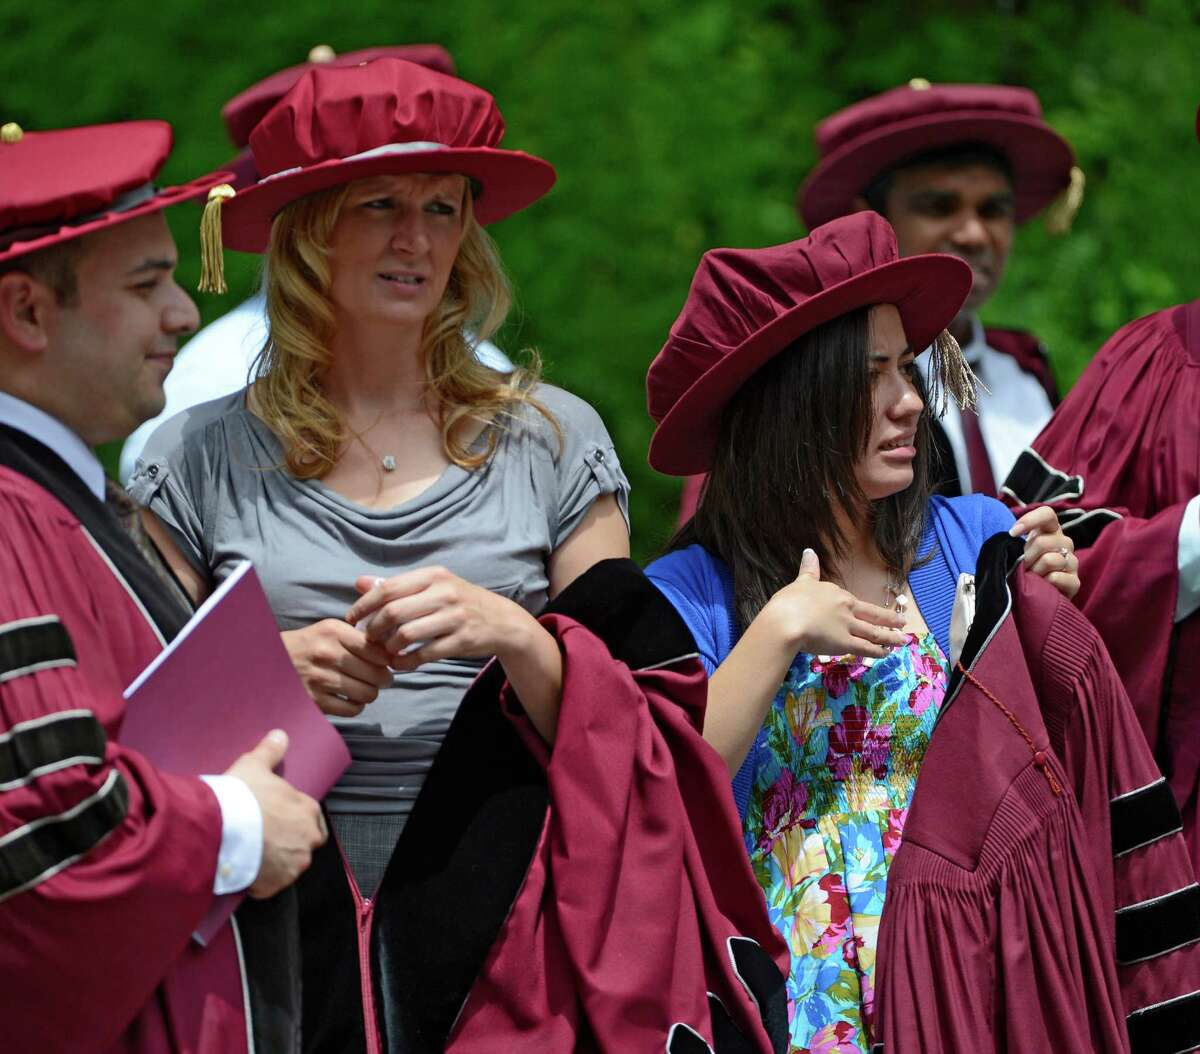 New Medical Doctors Aimee Steiniger, left and Shelby Spandl keep cool by keeping their robes lowered while waiting for the Albany Medical College graduation ceremony to commence at the Saratoga Performing Arts Center in Saratoga Springs, N.Y. May 24, 2012. (Skip Dickstein / Times Union)